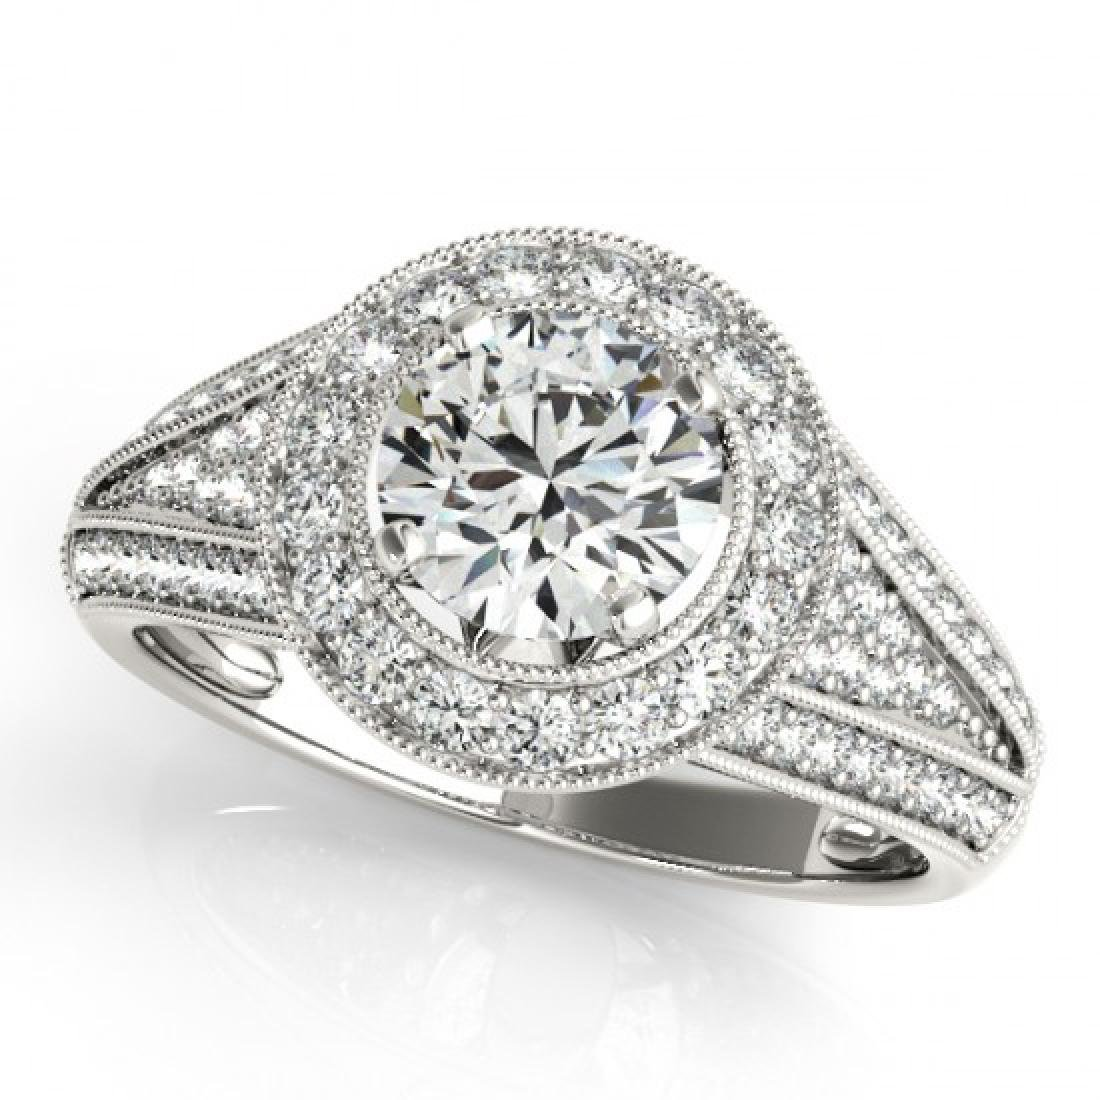 2.17 CTW Certified VS/SI Diamond Solitaire Halo Ring